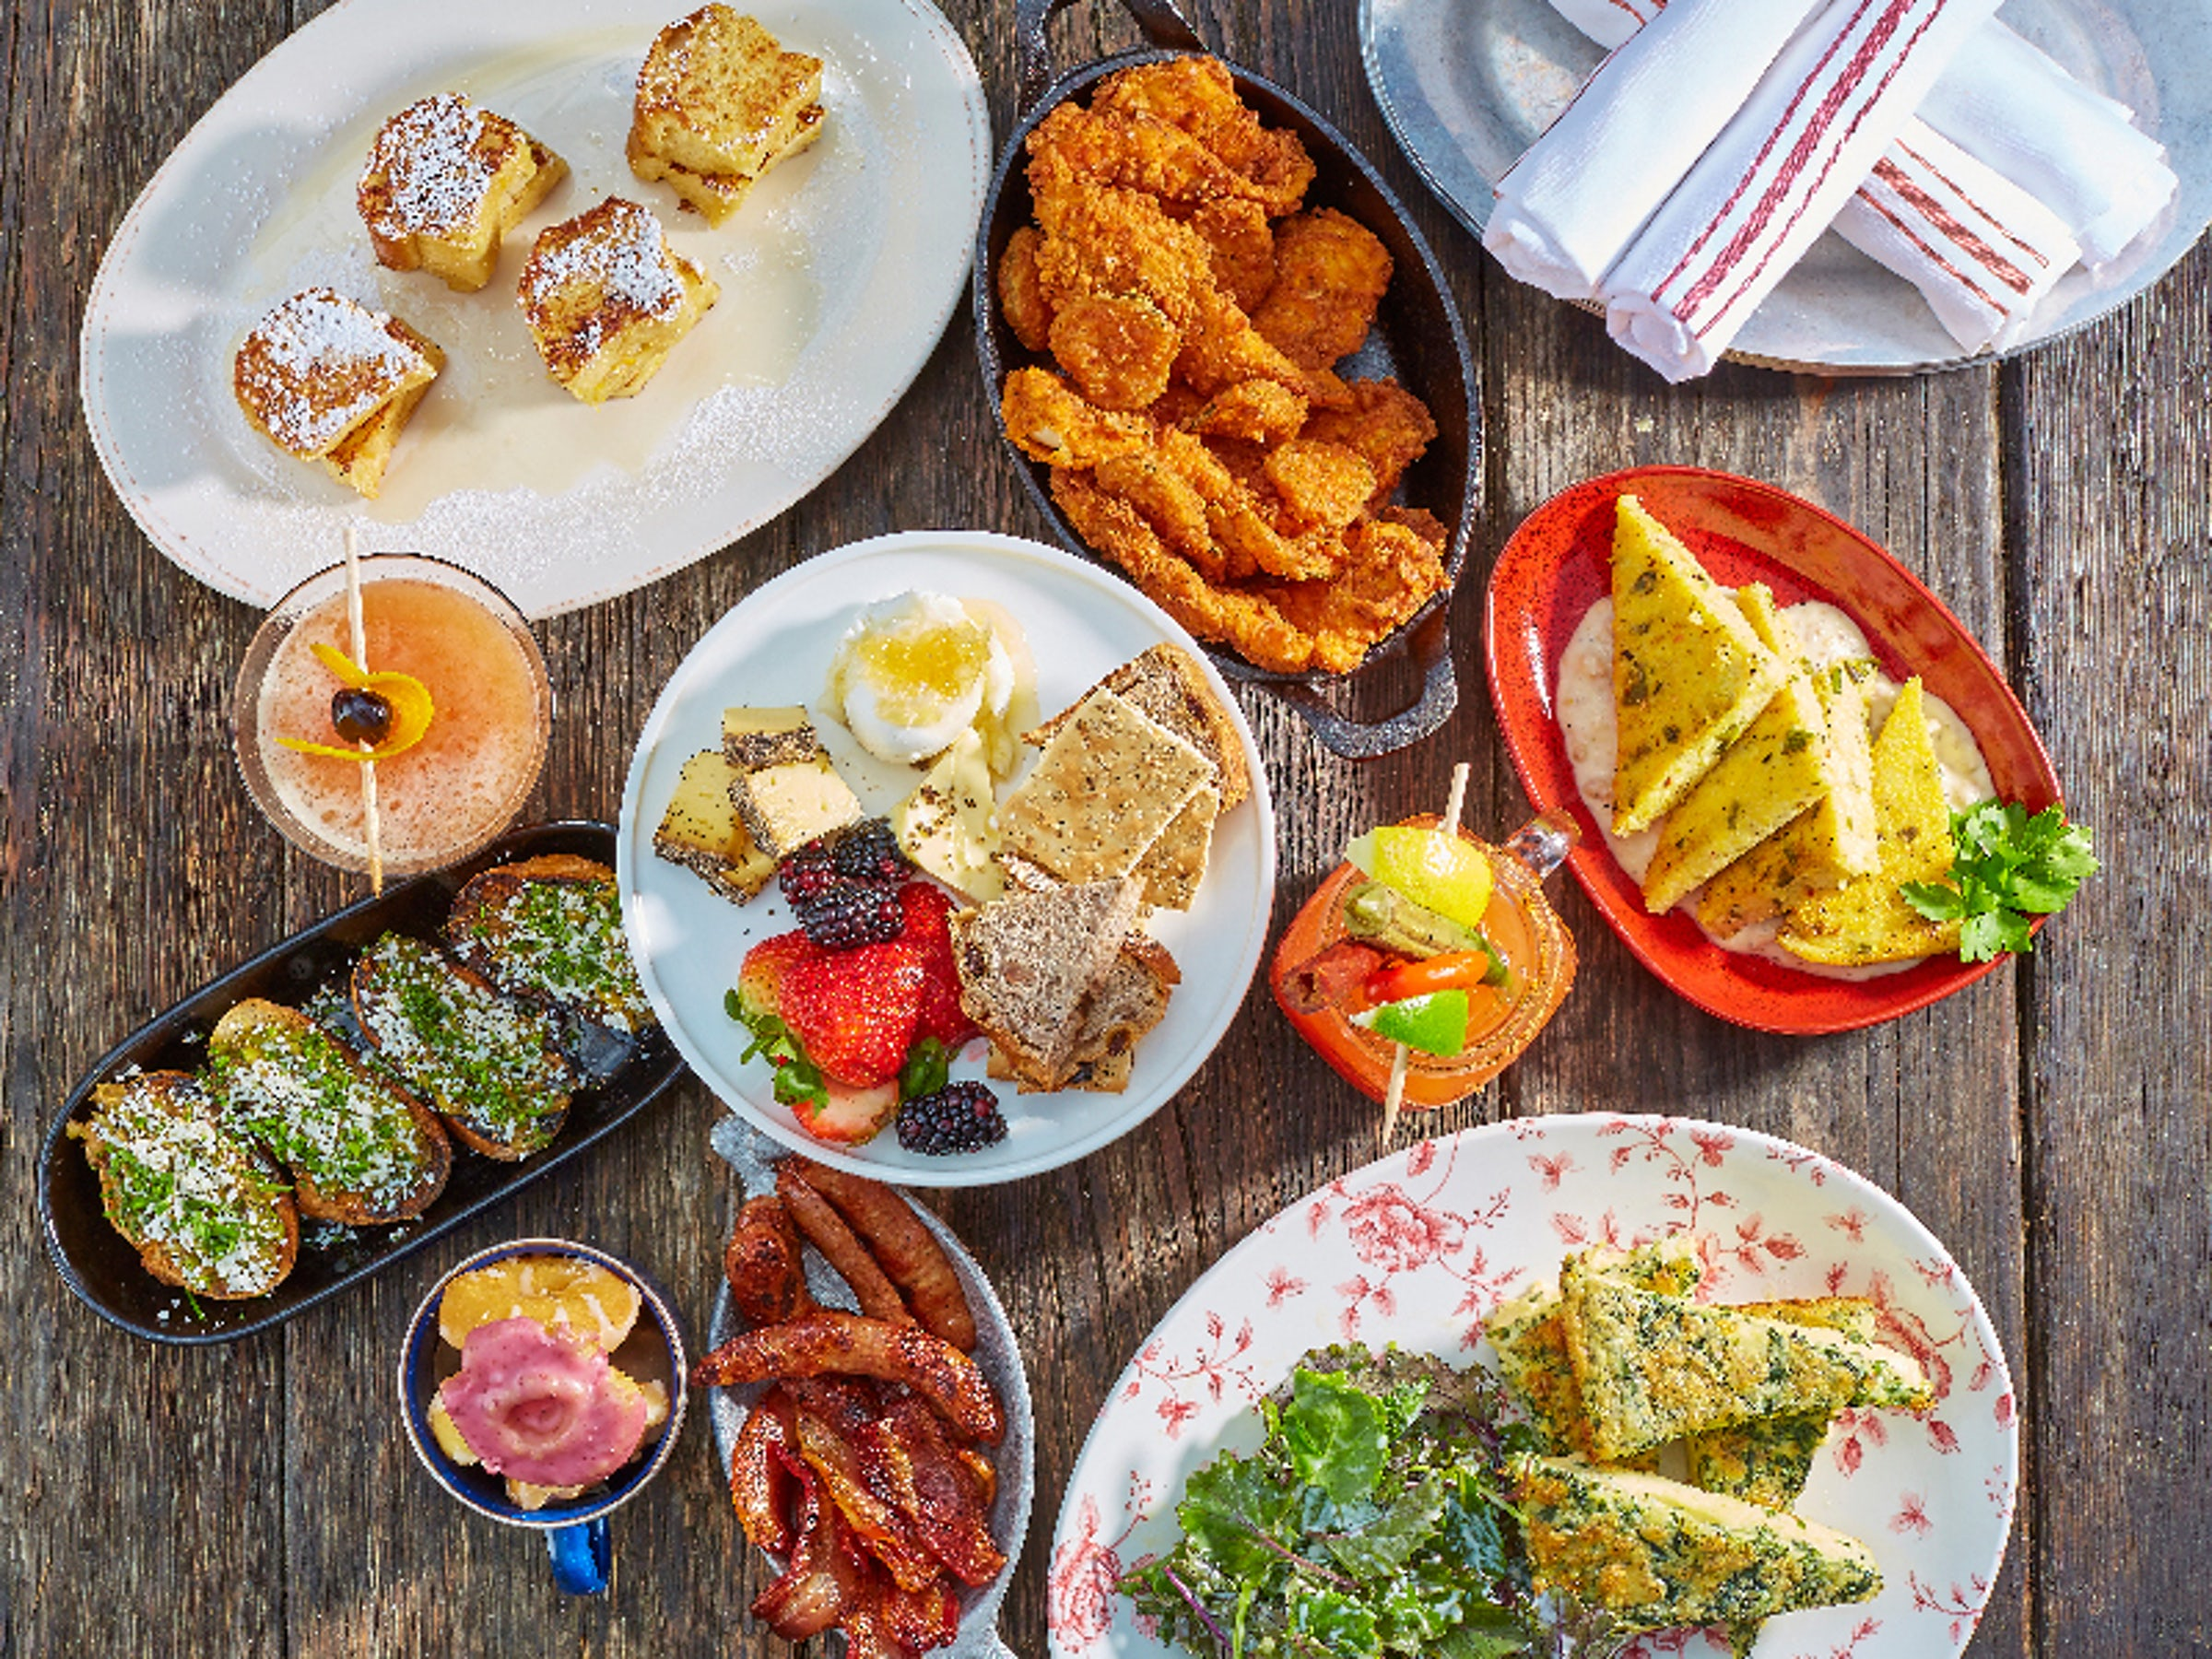 The Rustic in Beyond Dallas